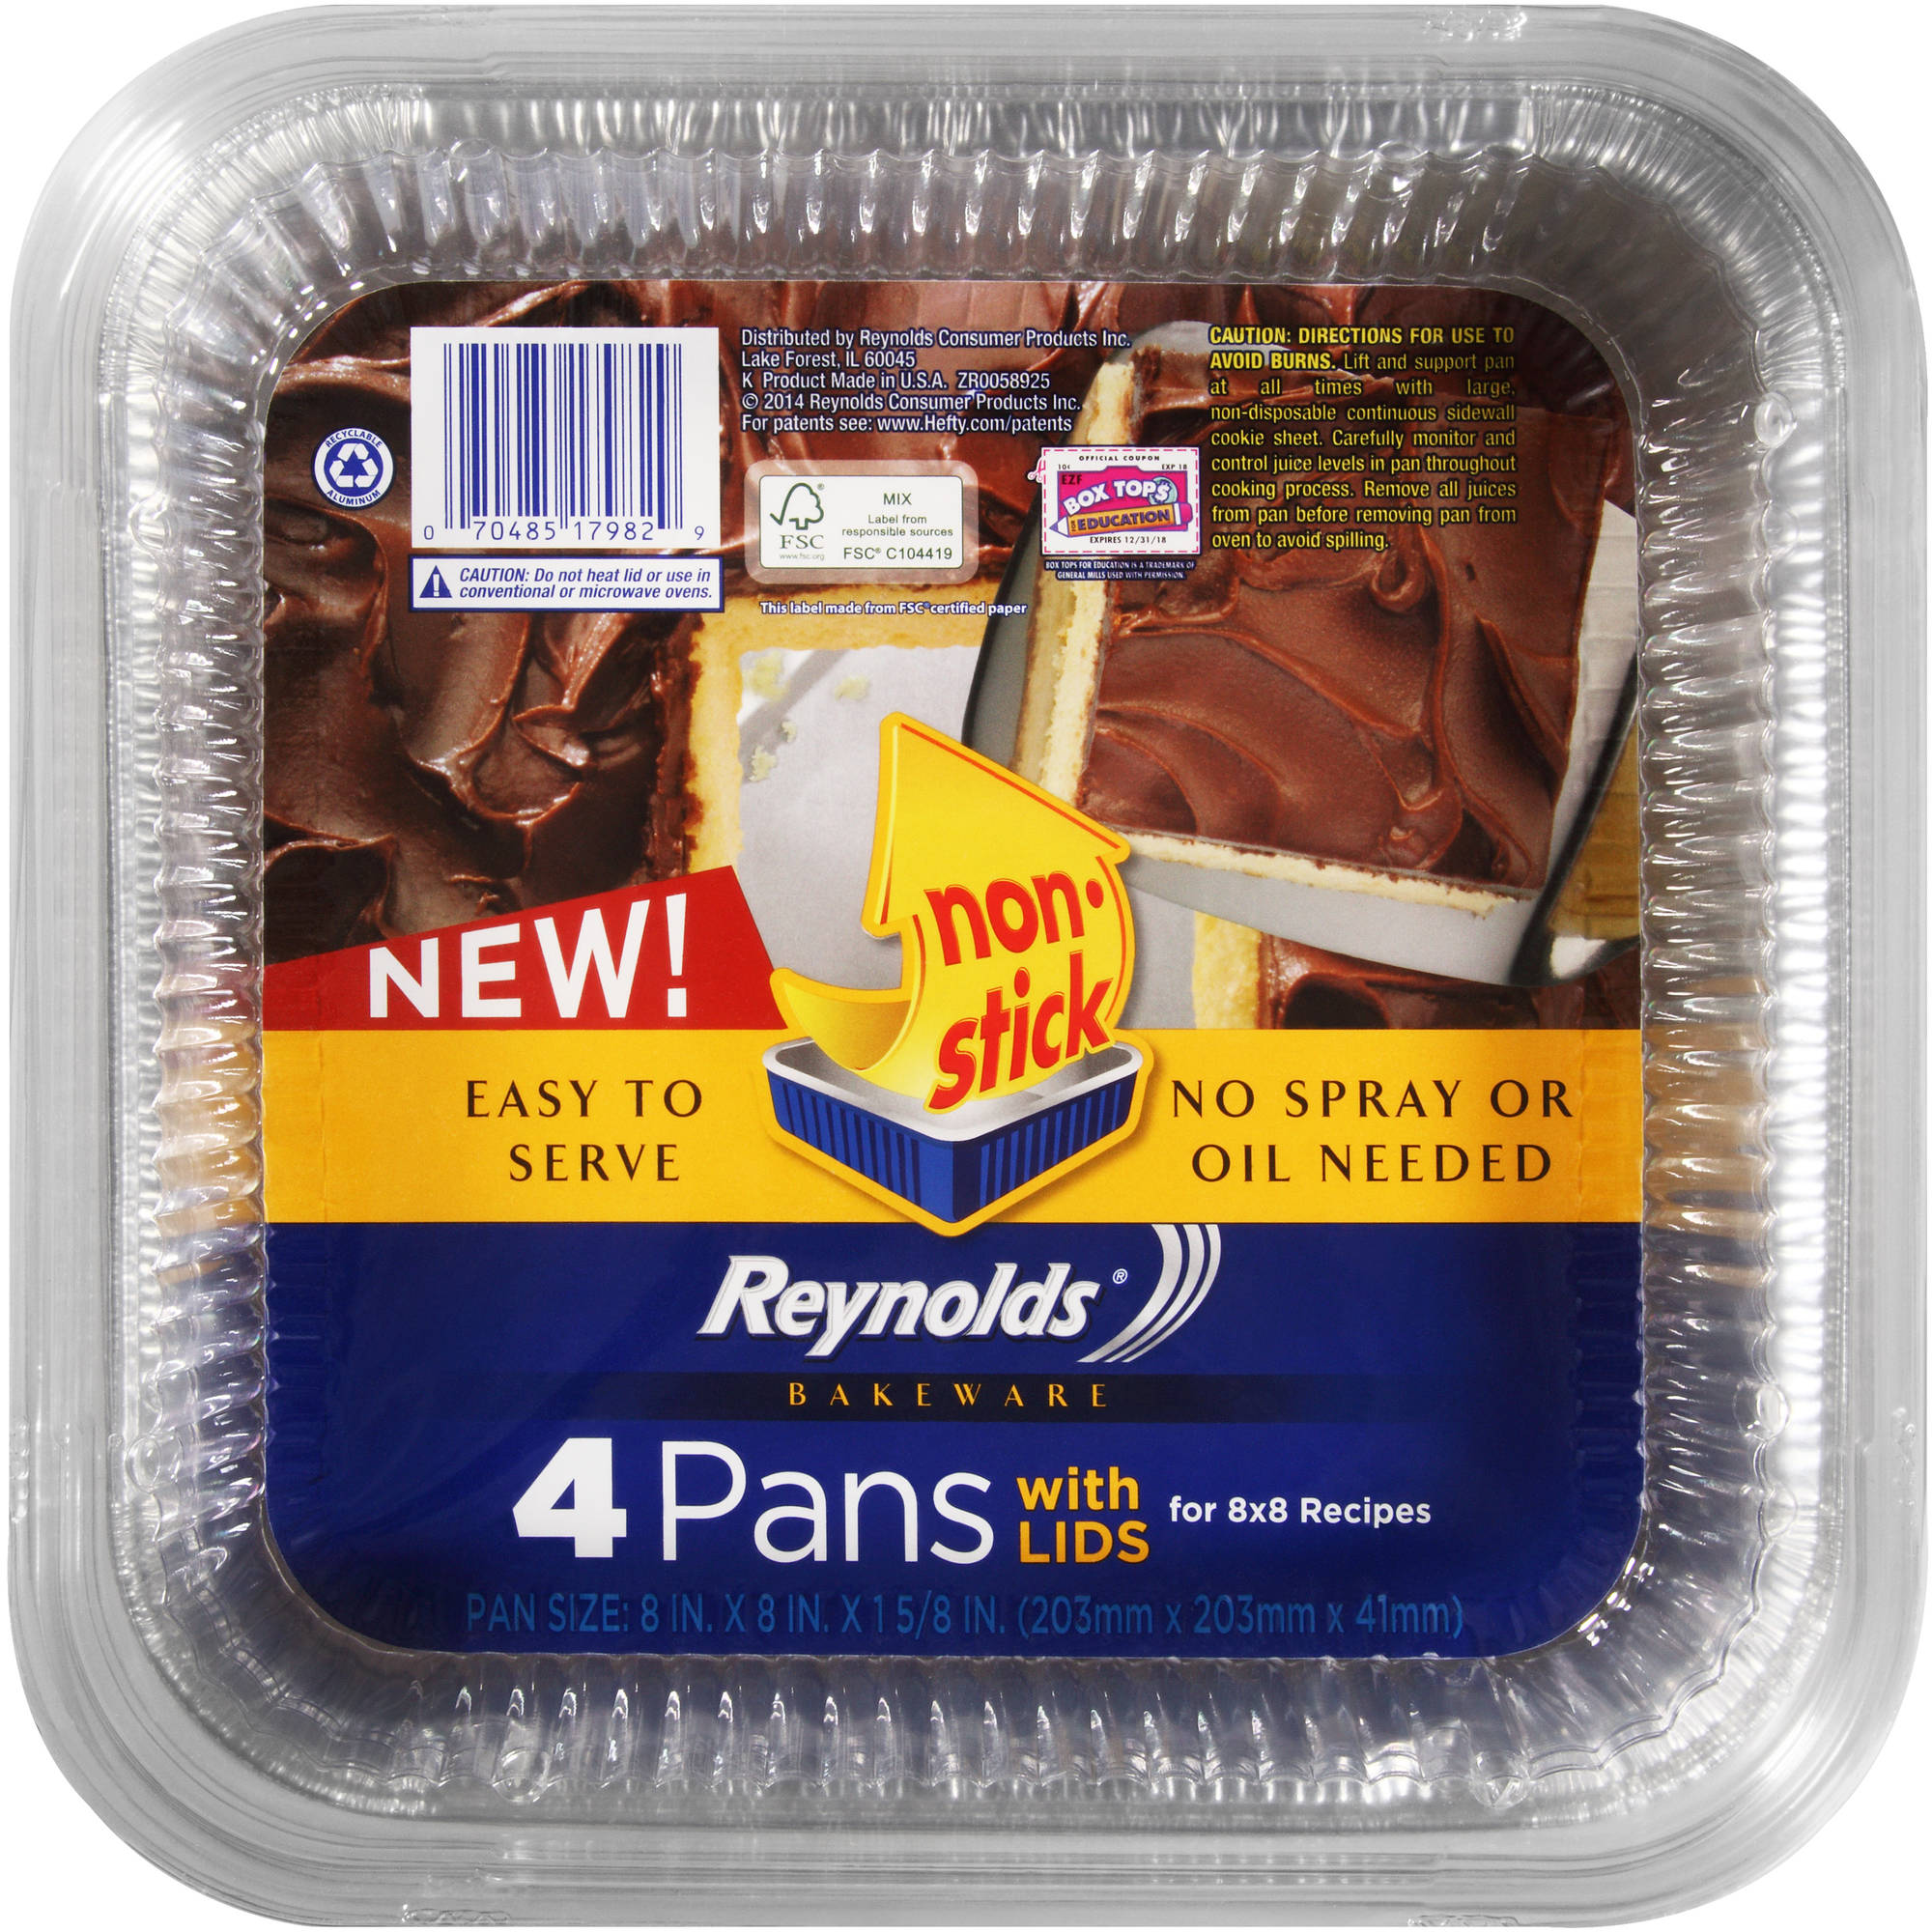 Reynolds Bakeware Pans with Lids, 4 count